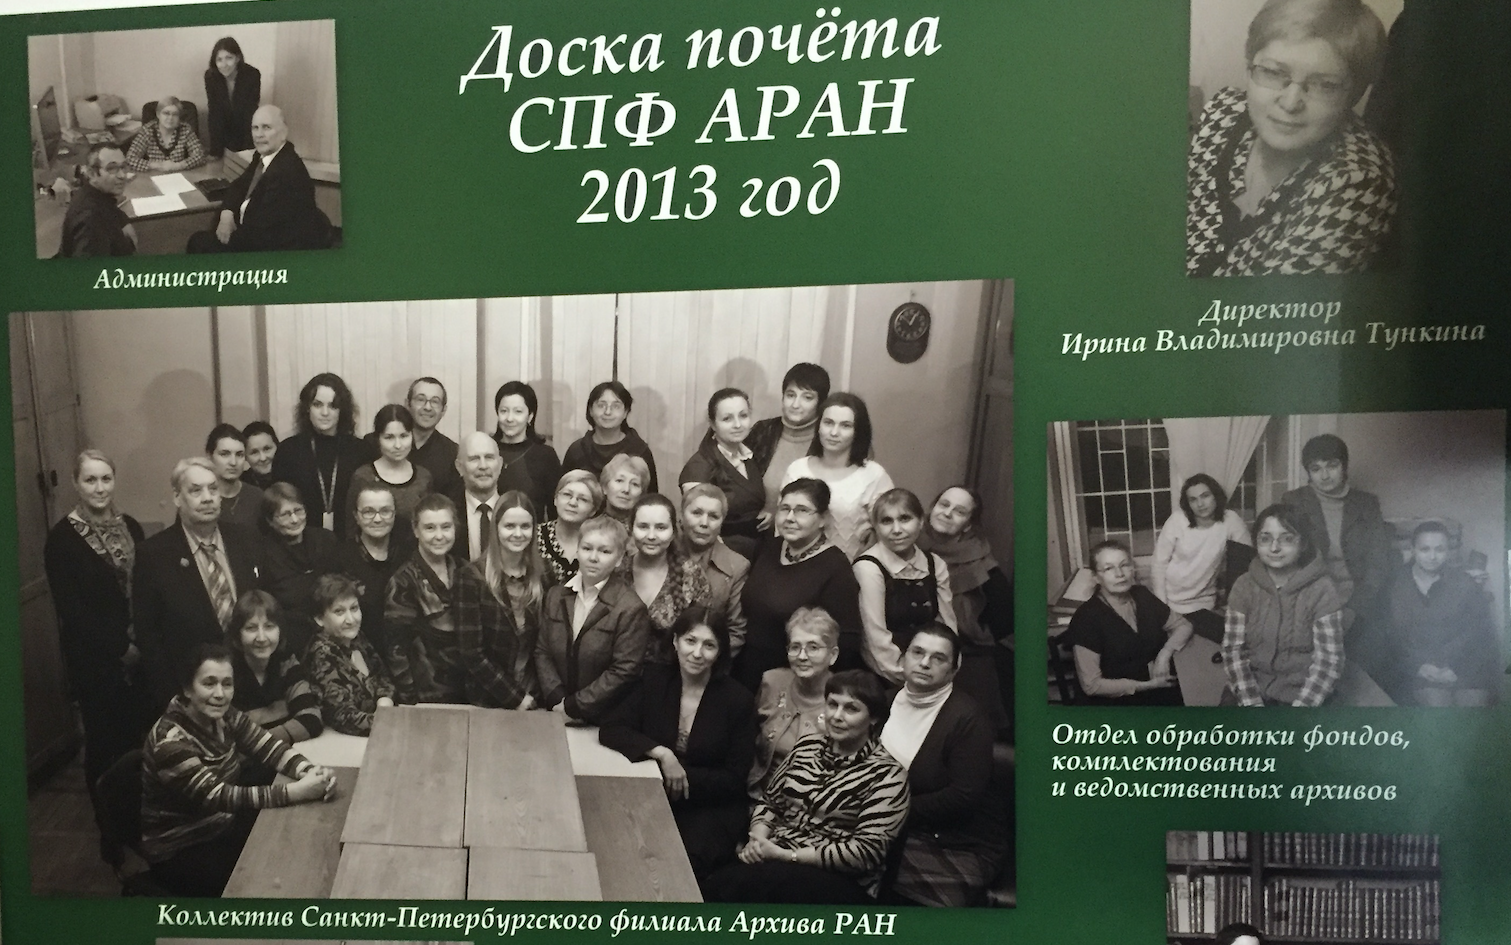 Image 5. Staff and directory of the Archive of the Saint Petersburg Academy of Sciences. © Yann Potin